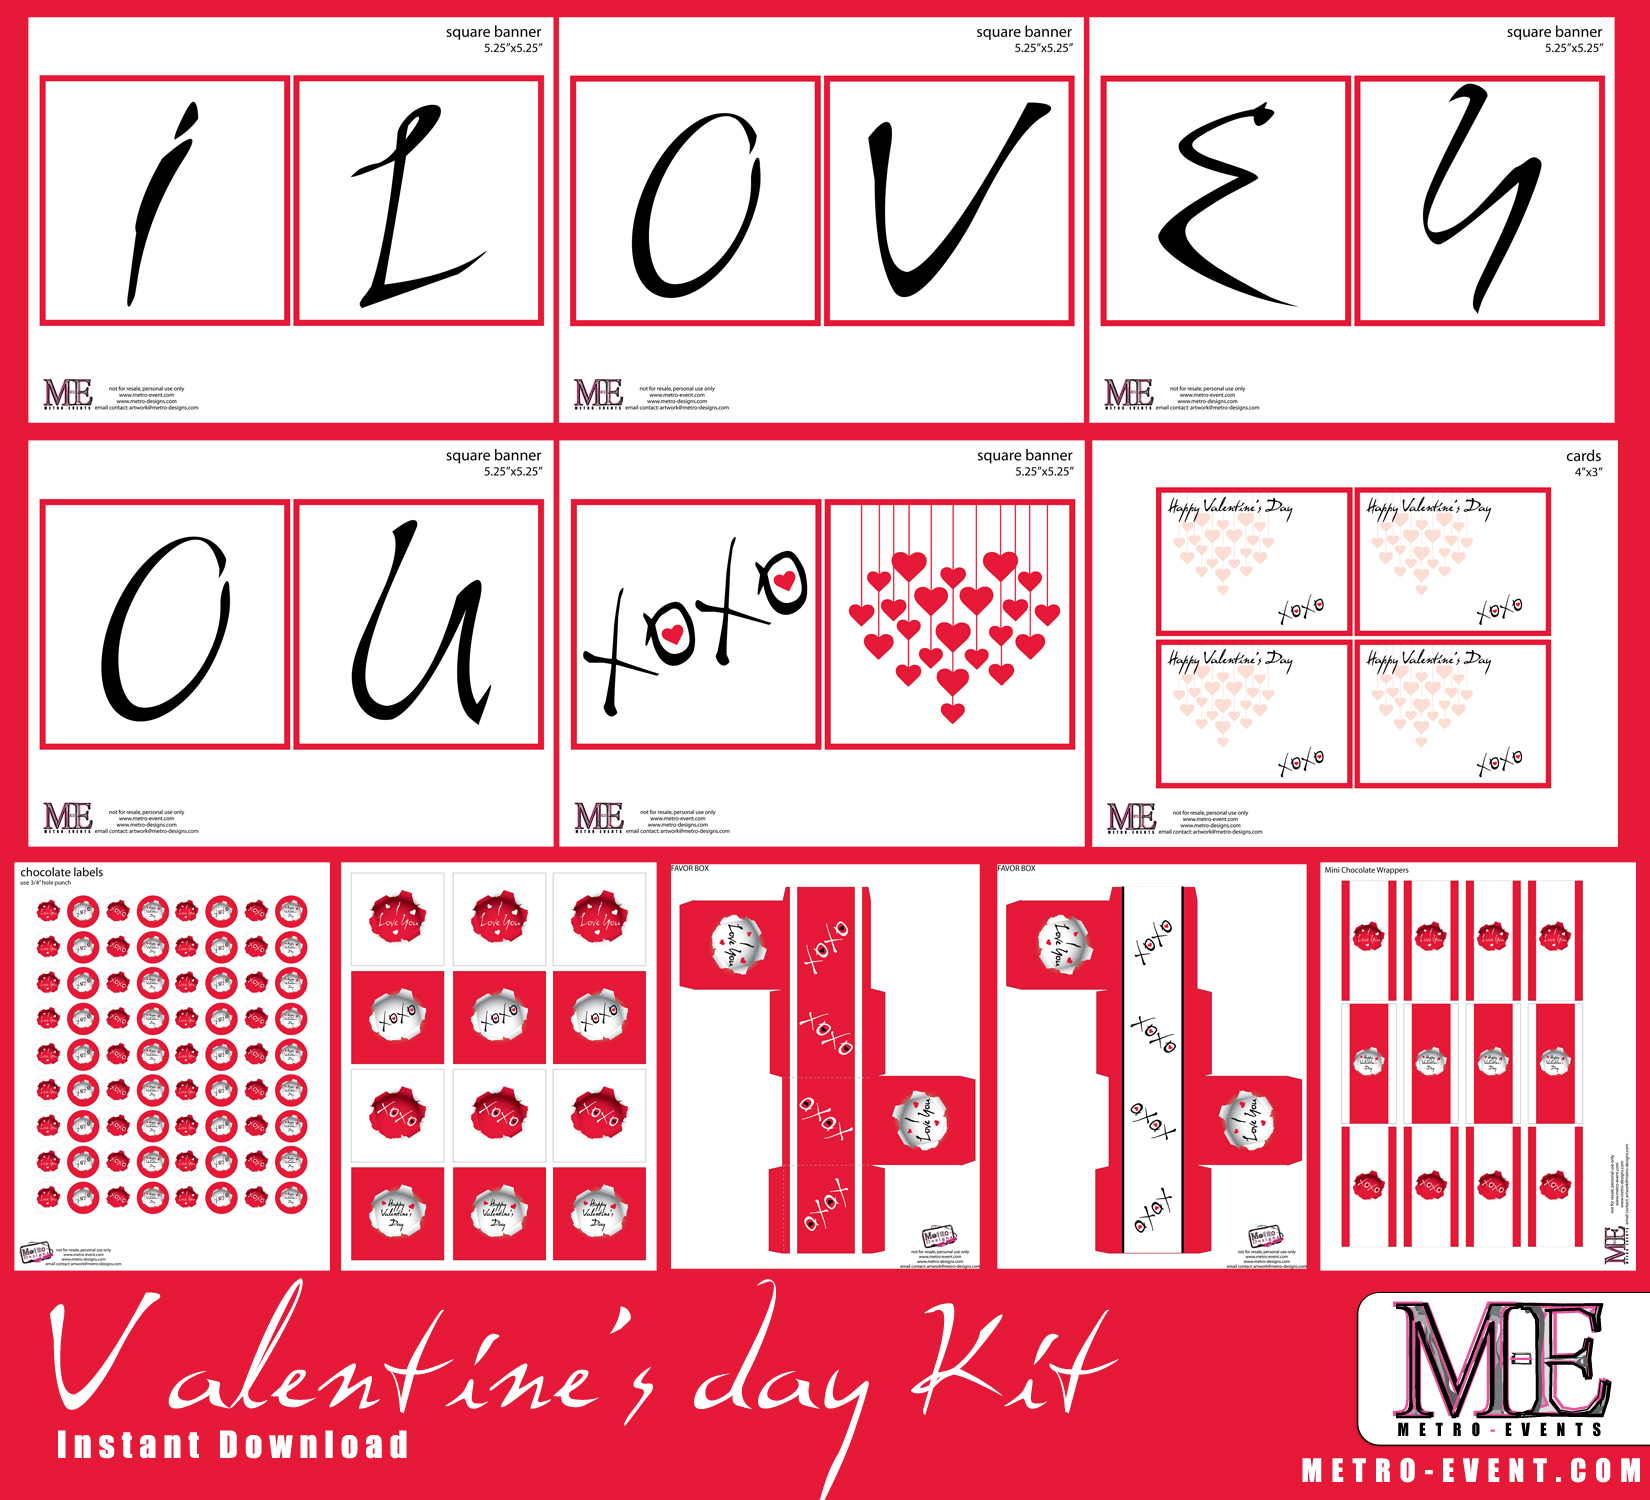 picture relating to Valentine's Day Printable Decorations called Valentines working day Banner, Valentines working day notes, Valentines working day playing cards. Valentines working day printables, Valentines working day Decorations versus Metro-Occasions Social gathering